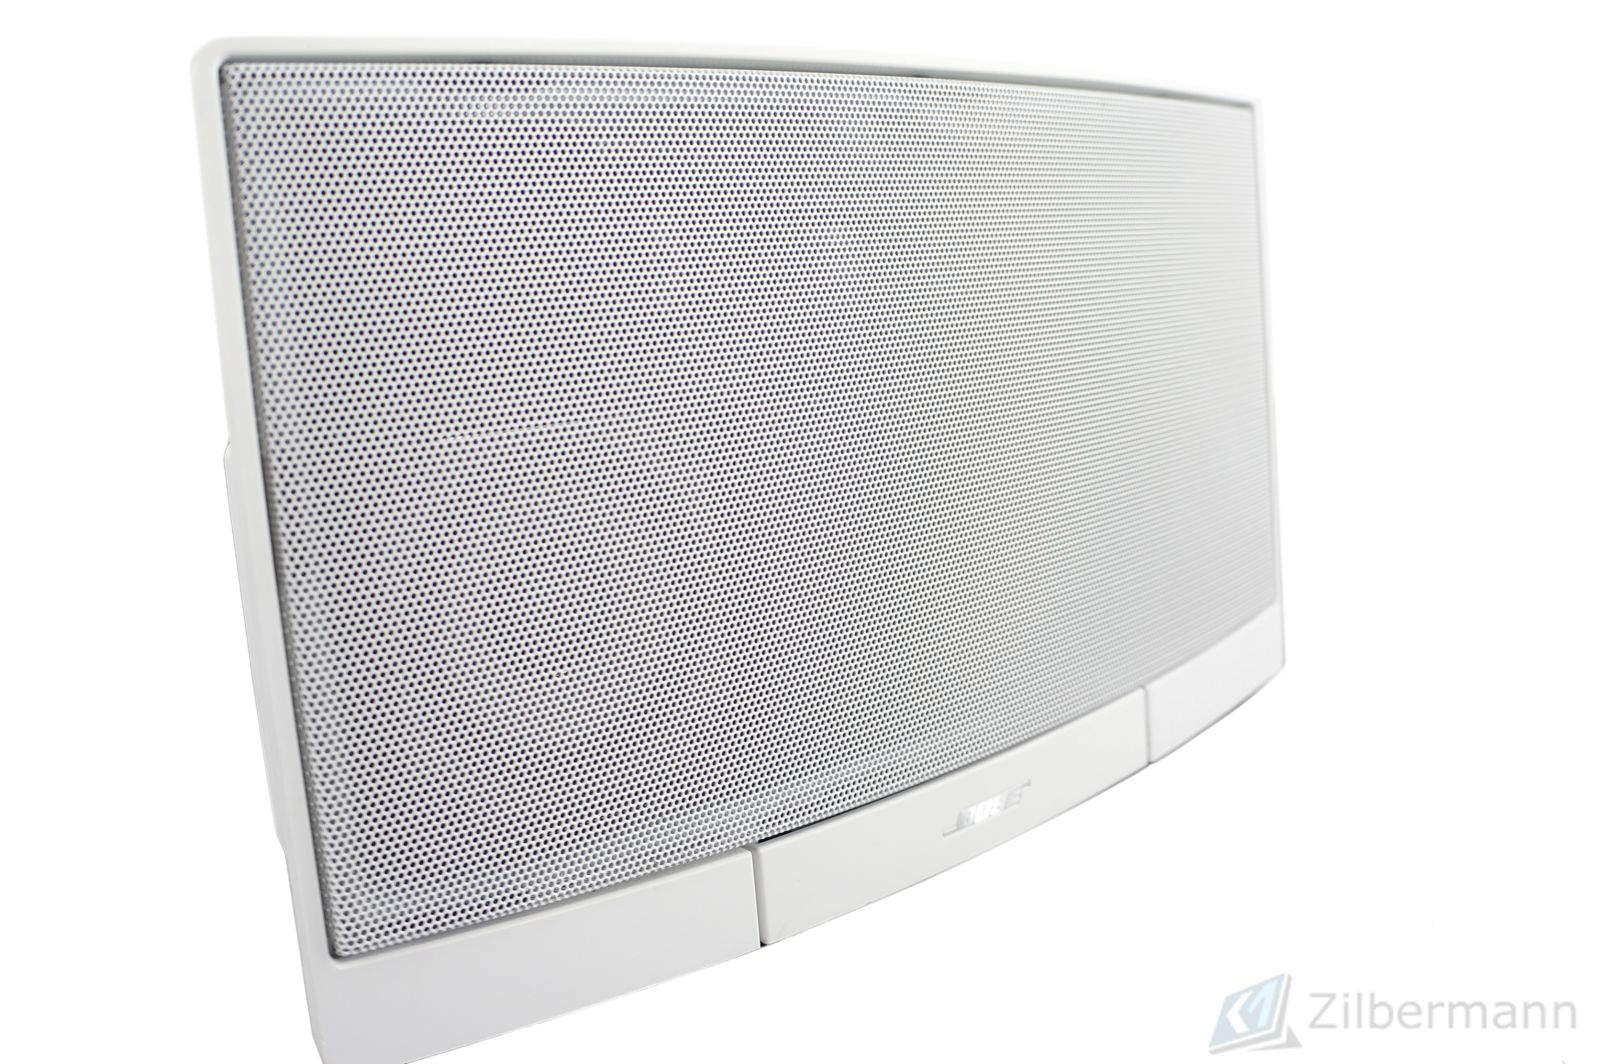 Bose_Lifestyle_Roommate_Powered_Speaker_System_Weiss_02_T9T9BRm